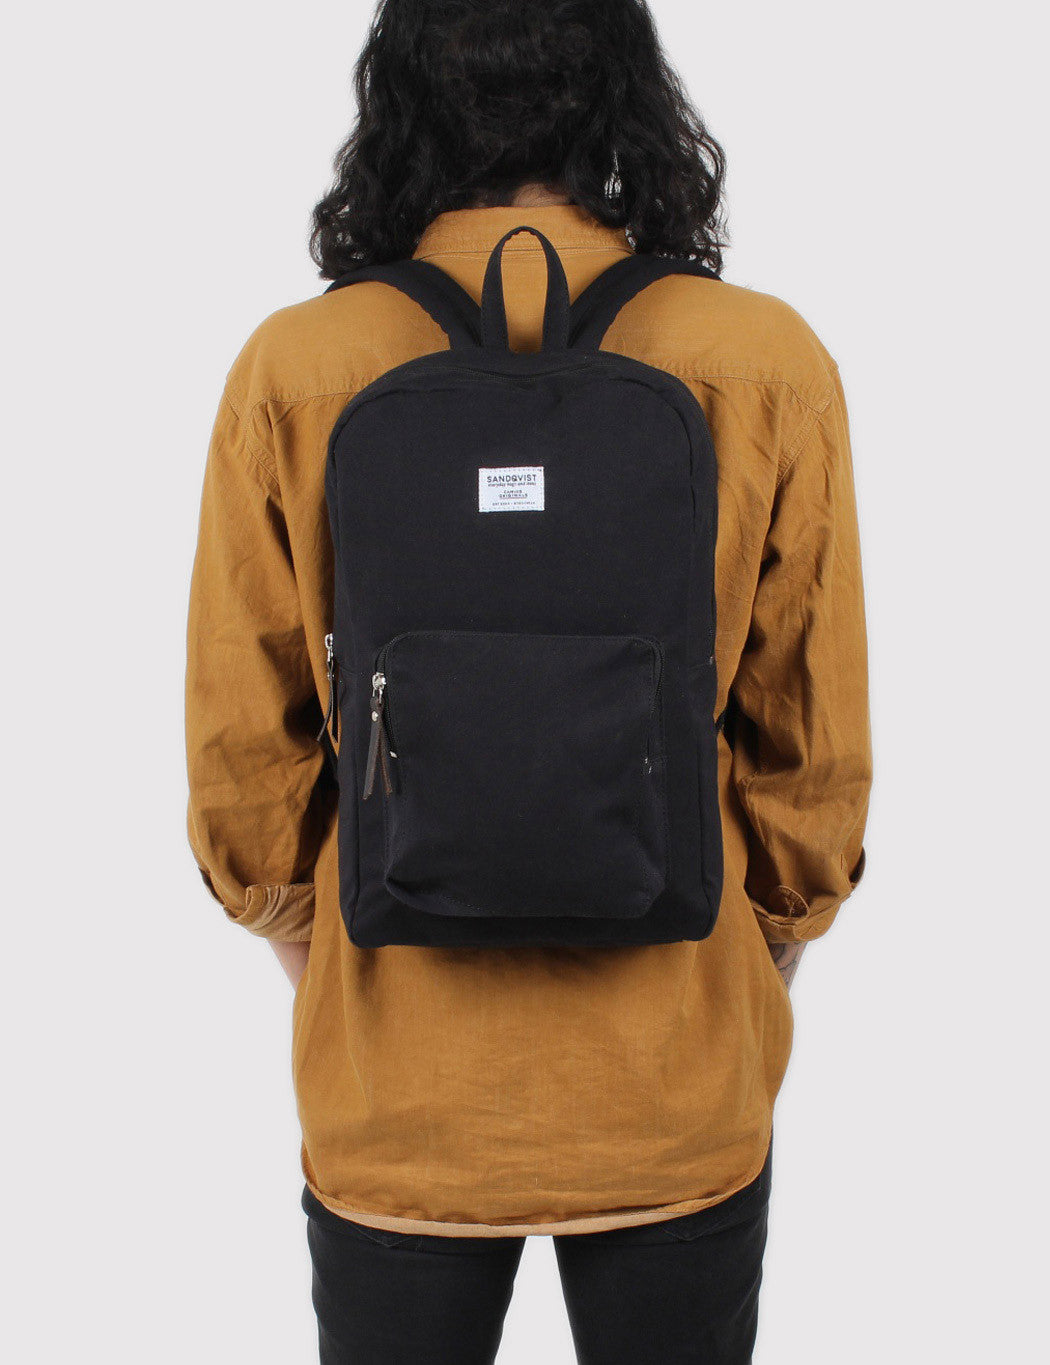 Sandqvist Kim Ground Backpack - Black